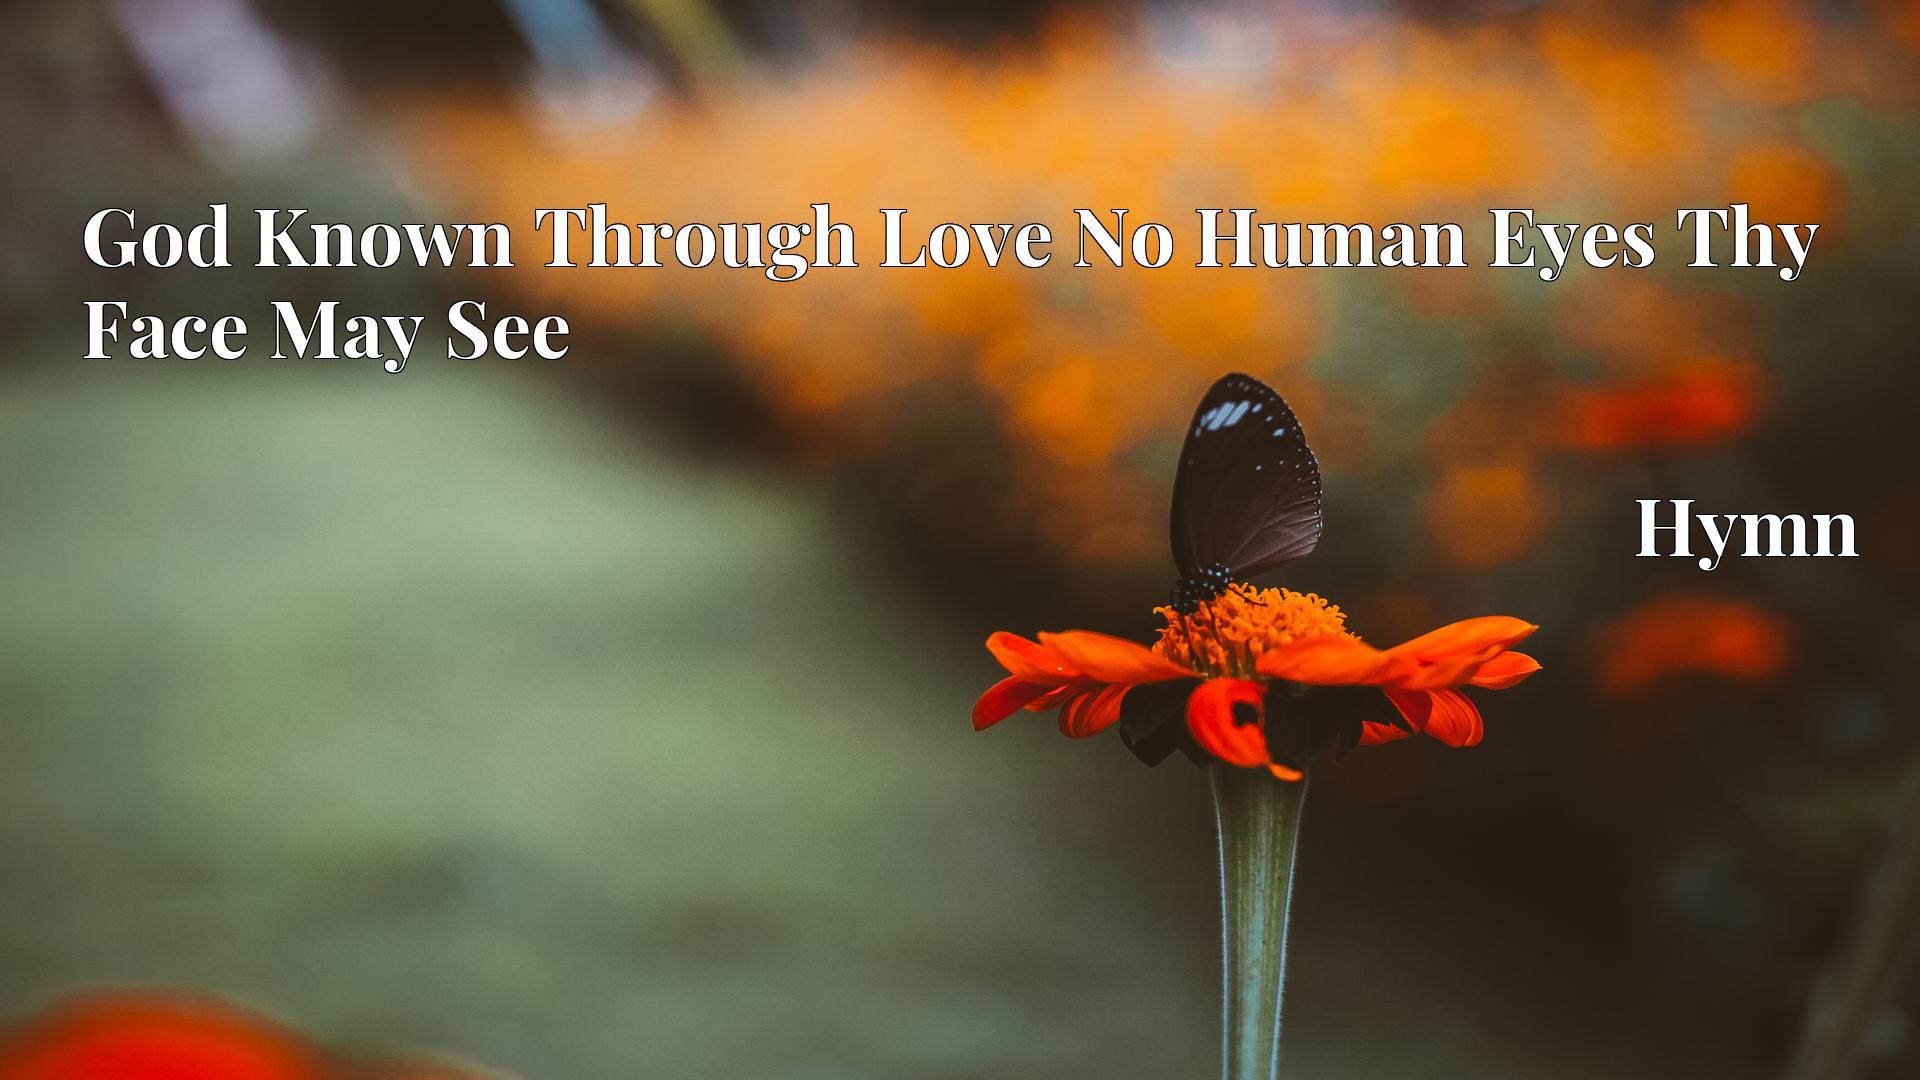 God Known Through Love No Human Eyes Thy Face May See Hymn